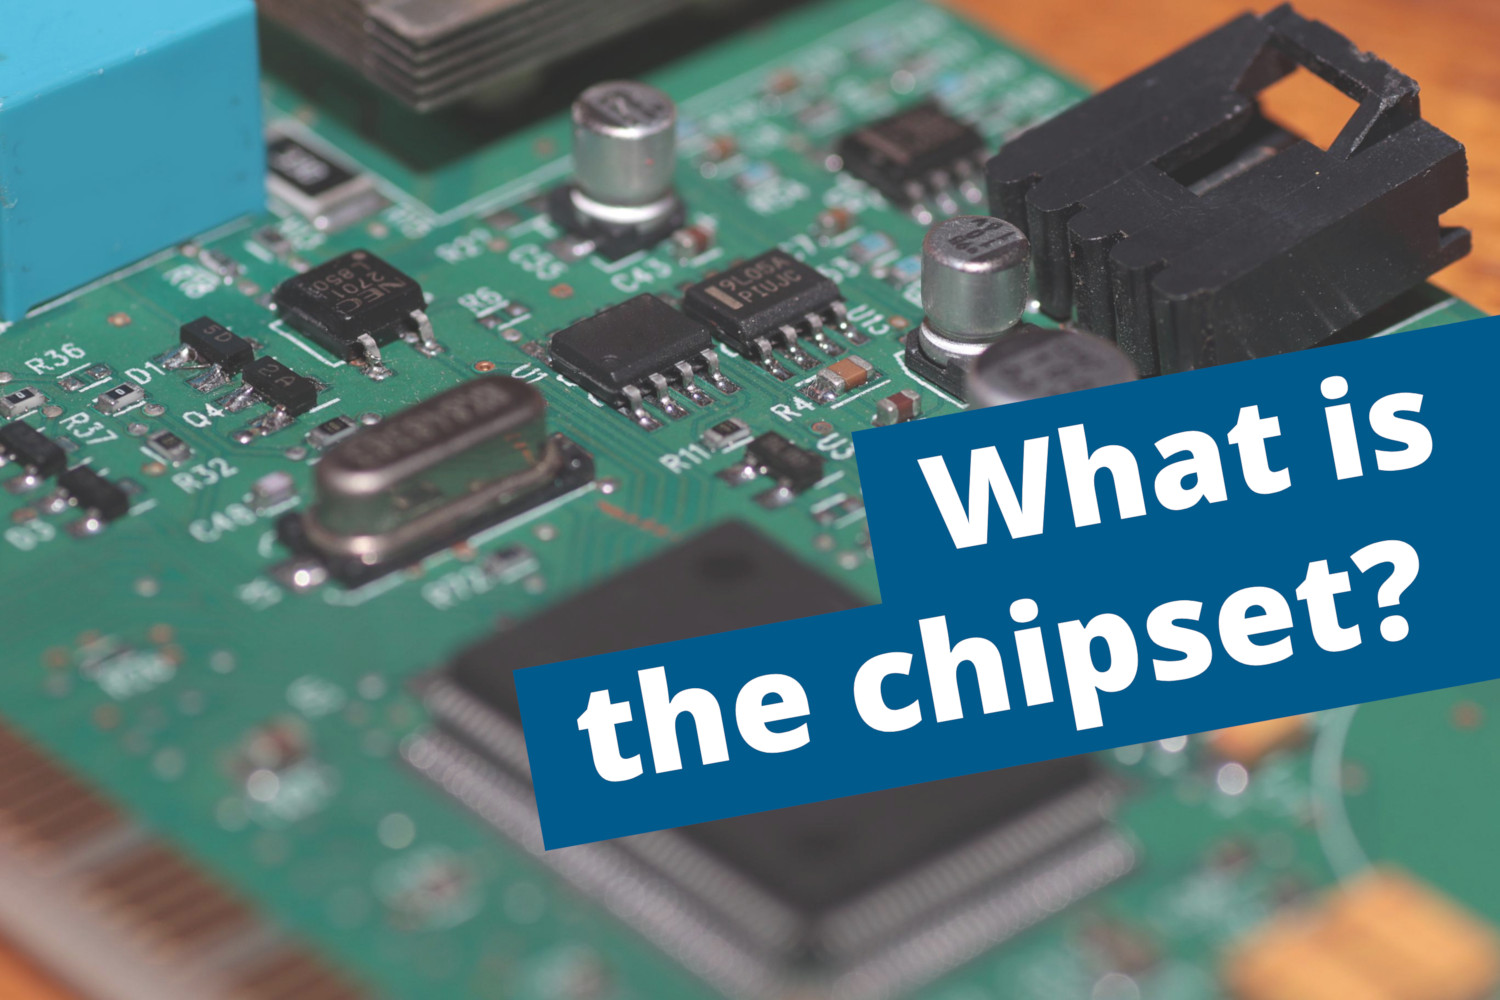 What is the chipset?